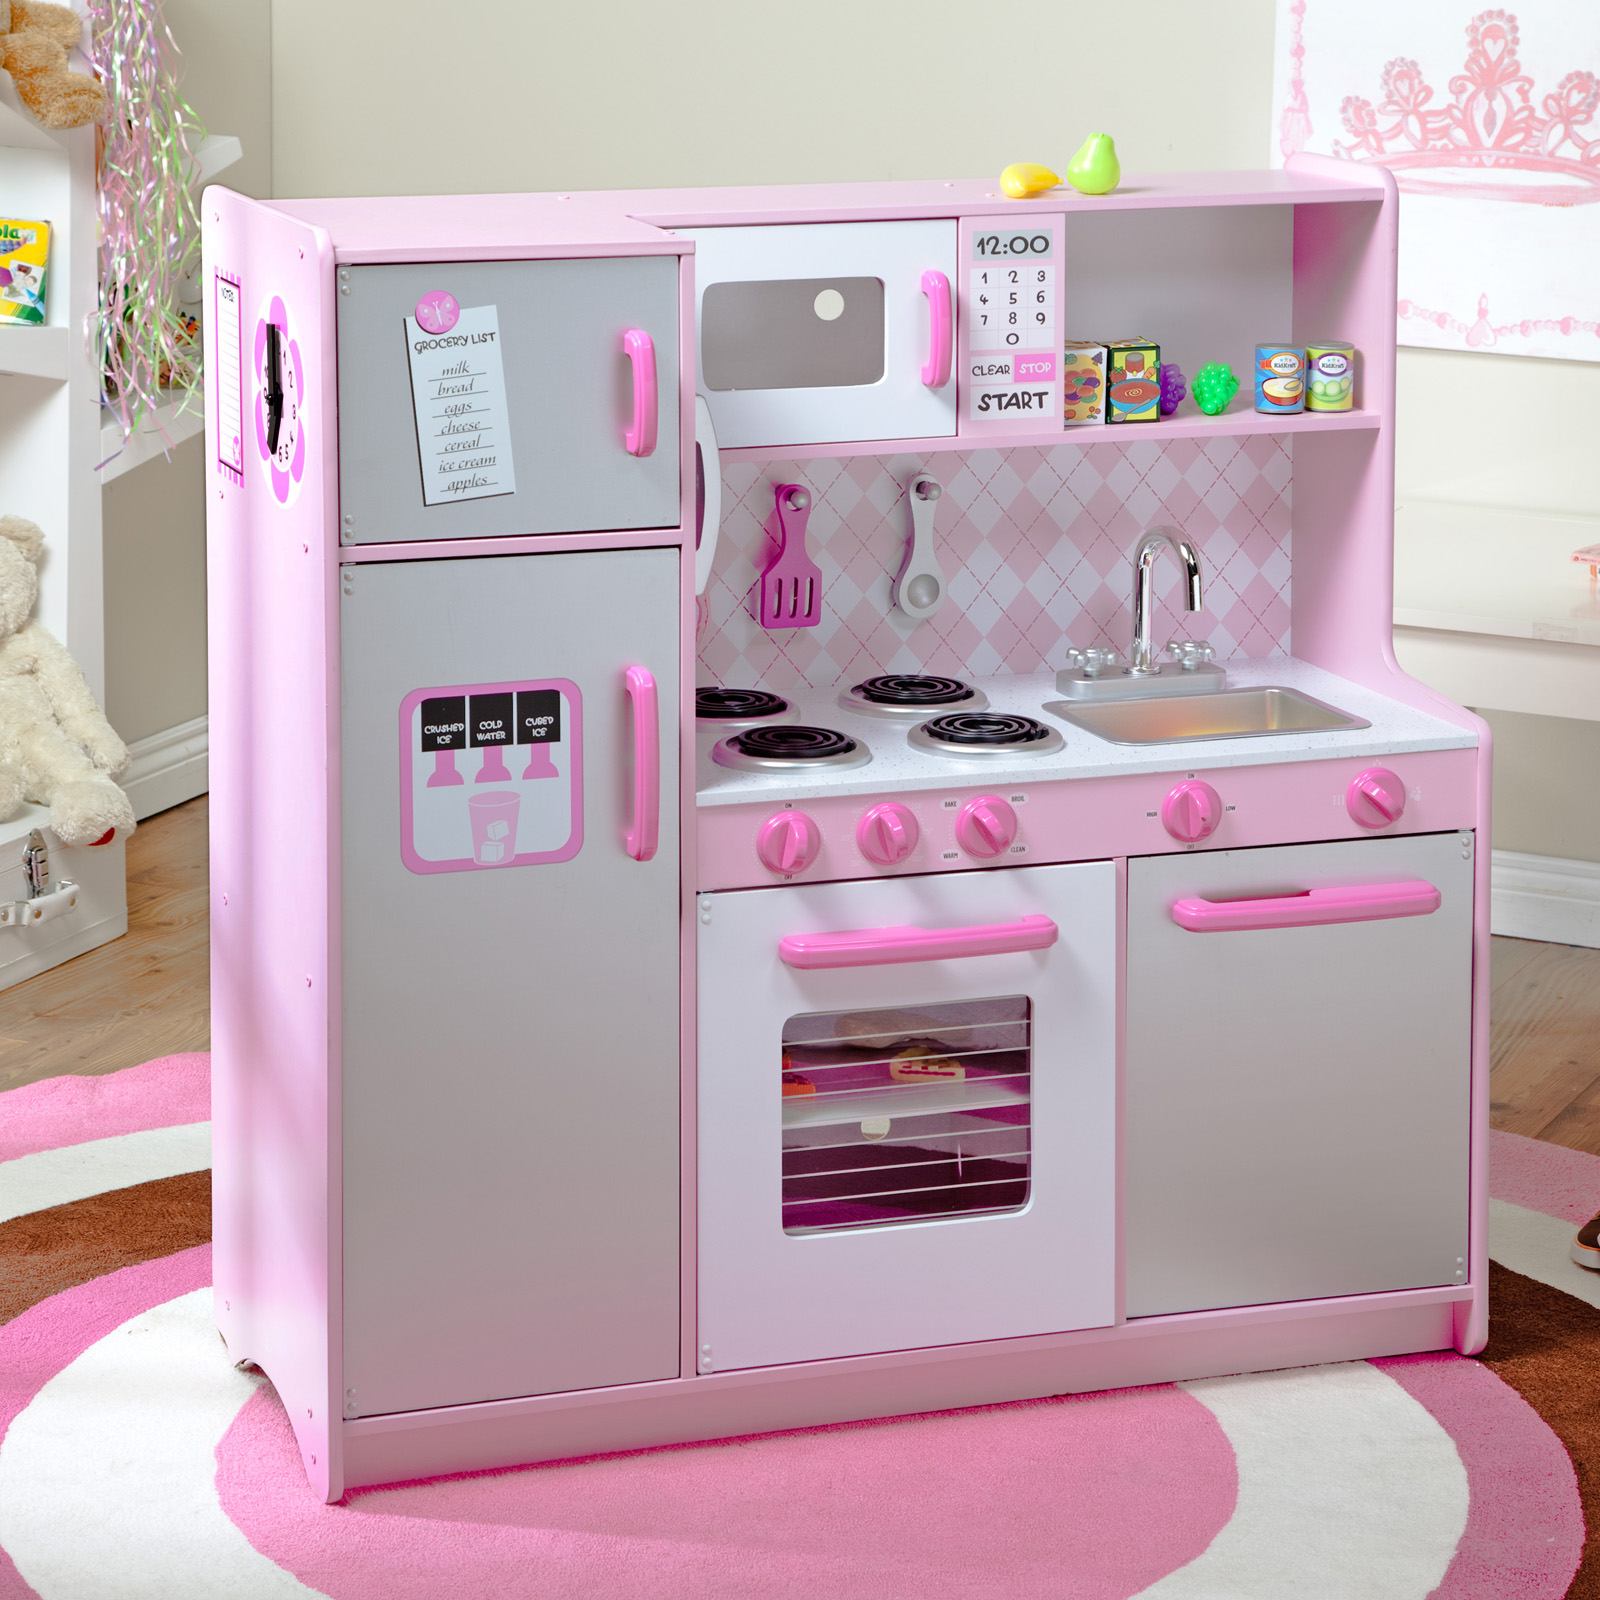 deluxe kitchen play set kids toy bo step2 in play kitchen